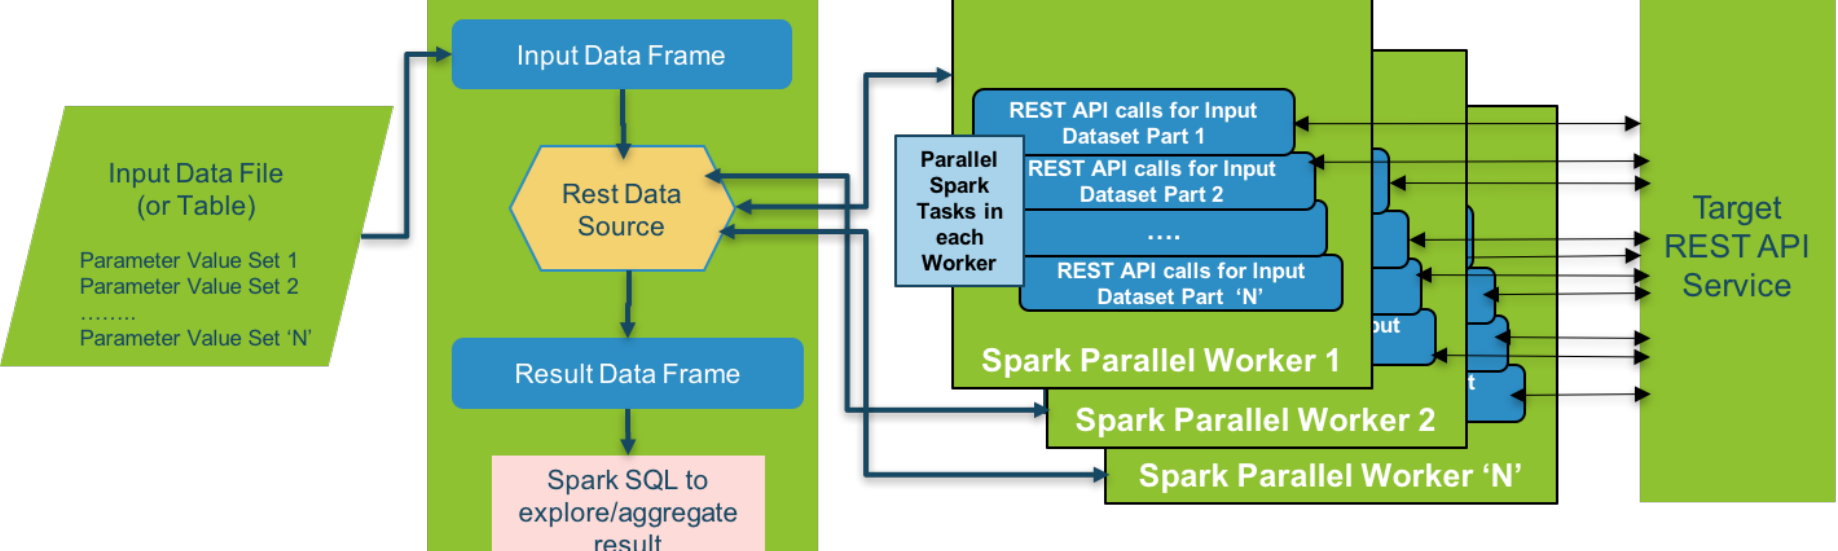 Using Apache Spark as a parallel processing framework for